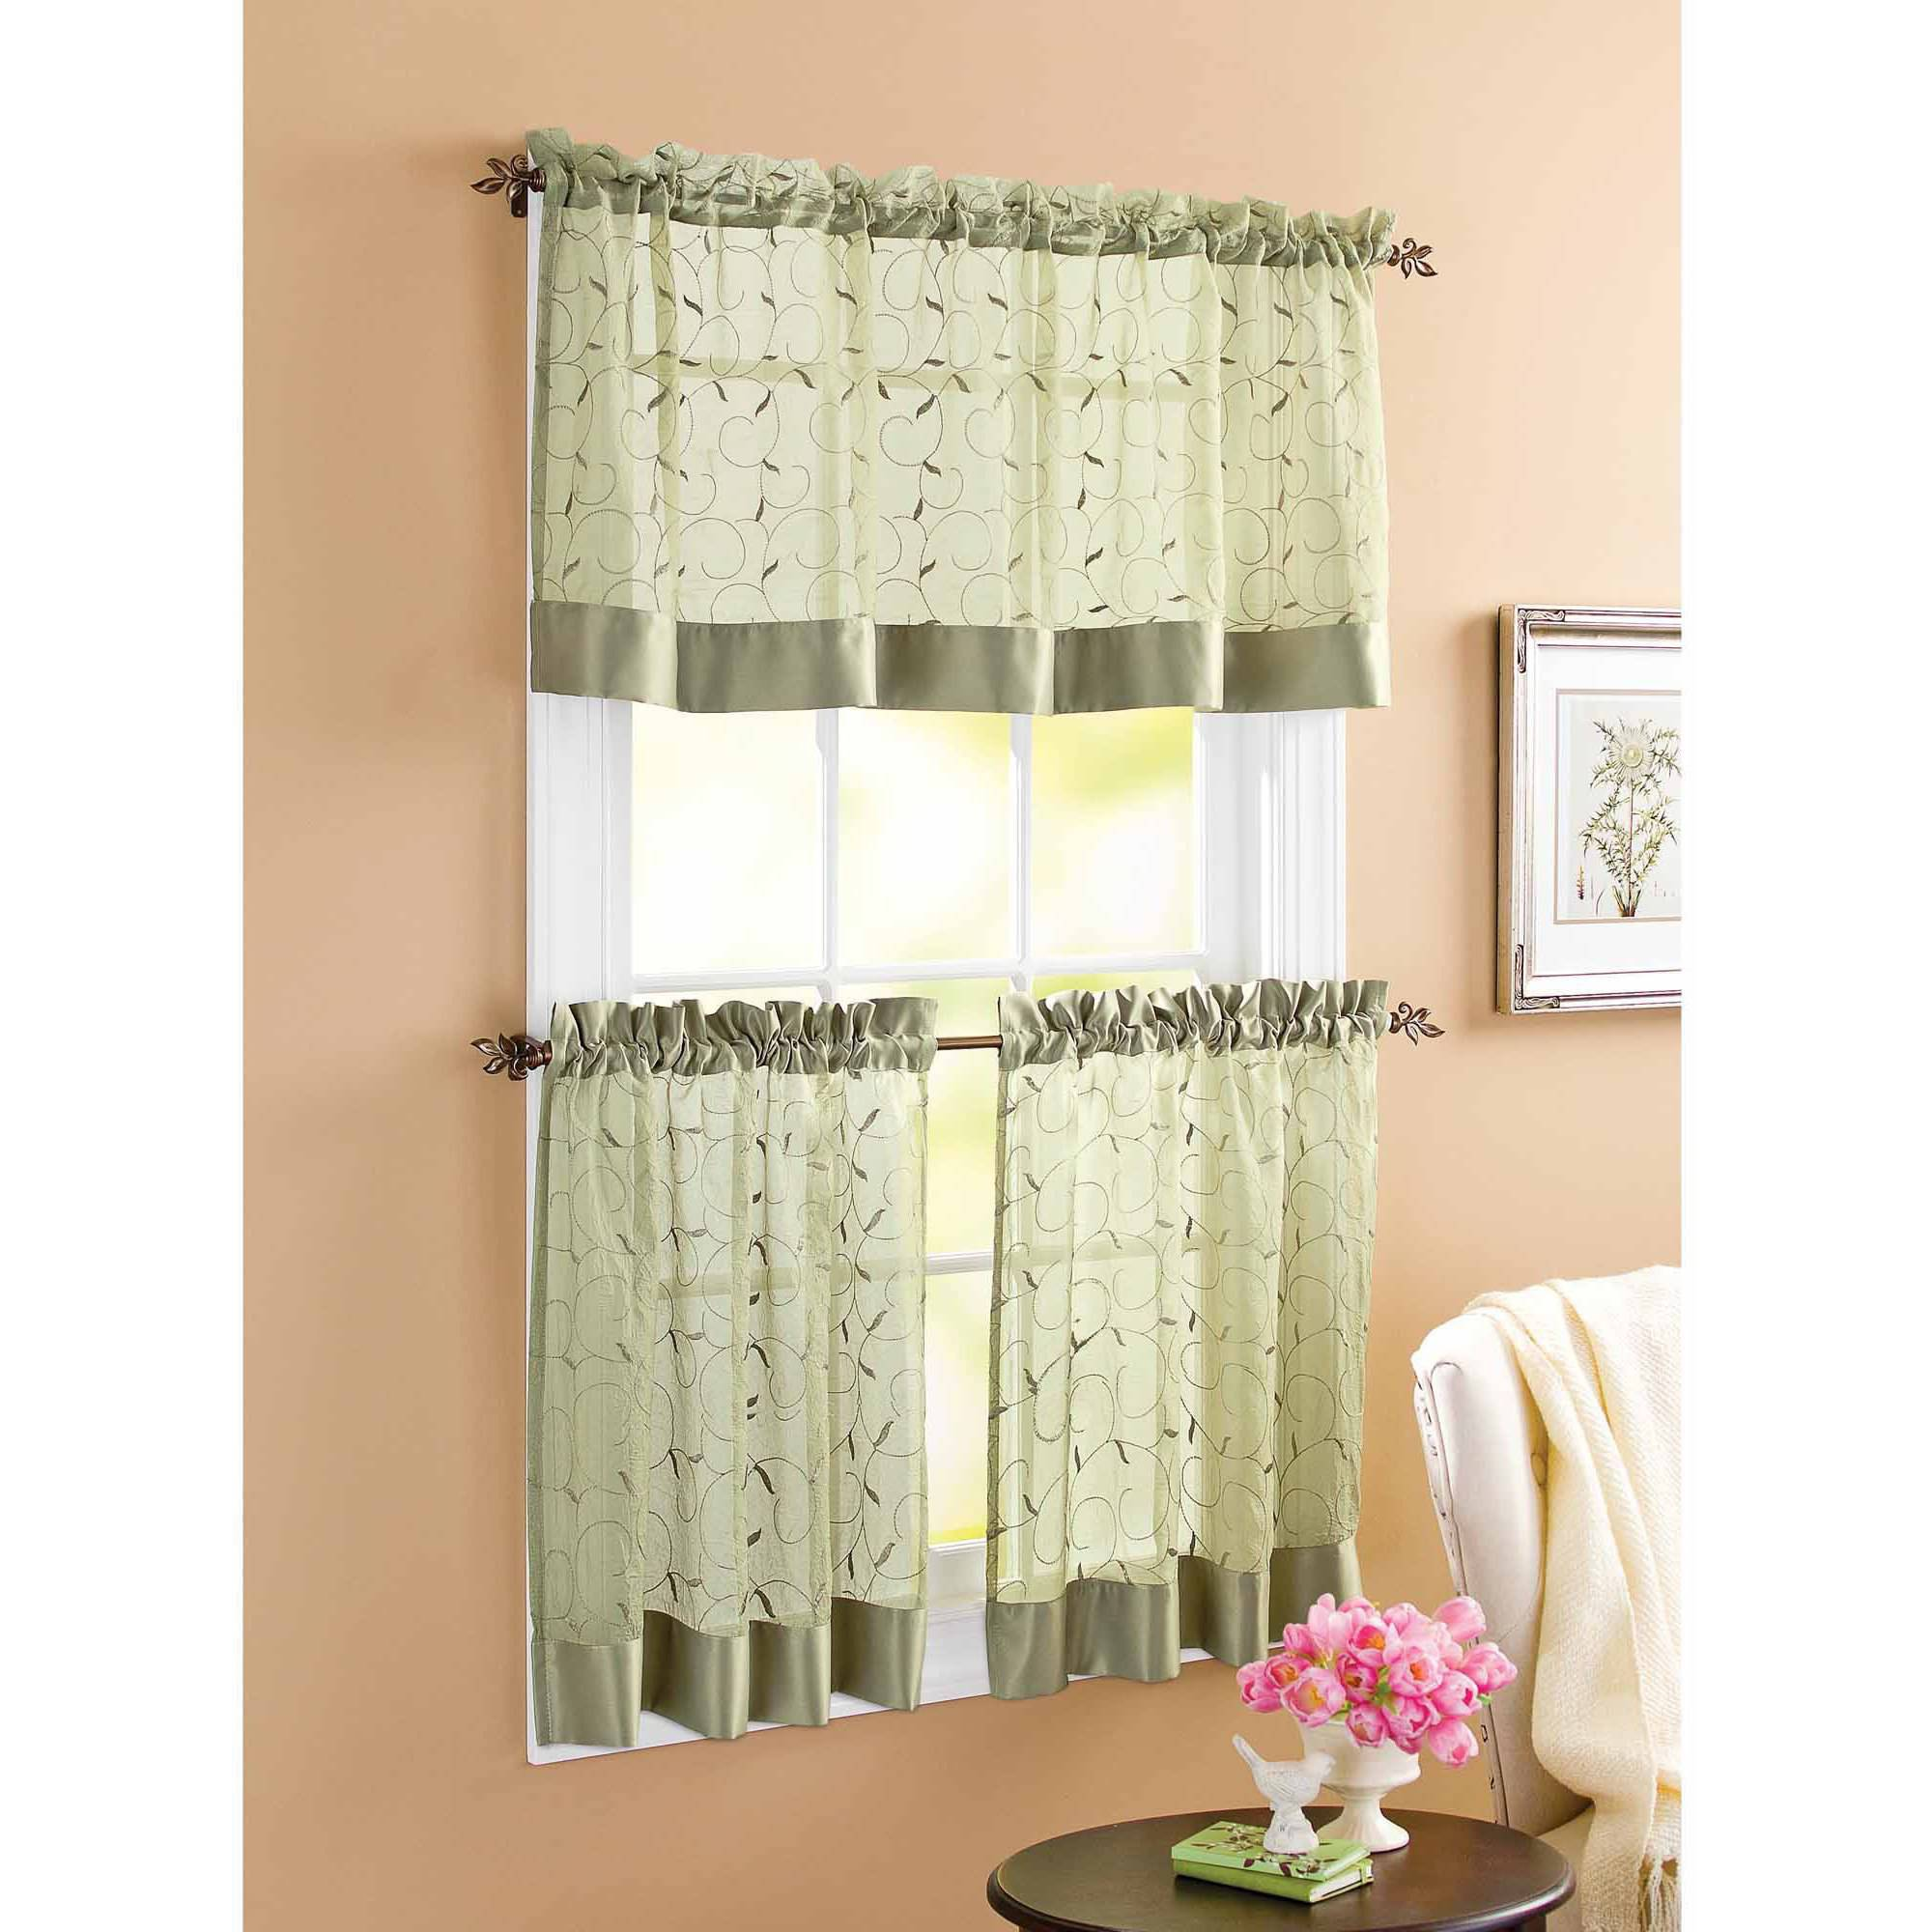 delightful Kitchen Curtain And Valance Set Part - 5: Better Homes and Gardens Blue Seashells Kitchen Curtains, Set of 2 or  Valance - Walmart.com